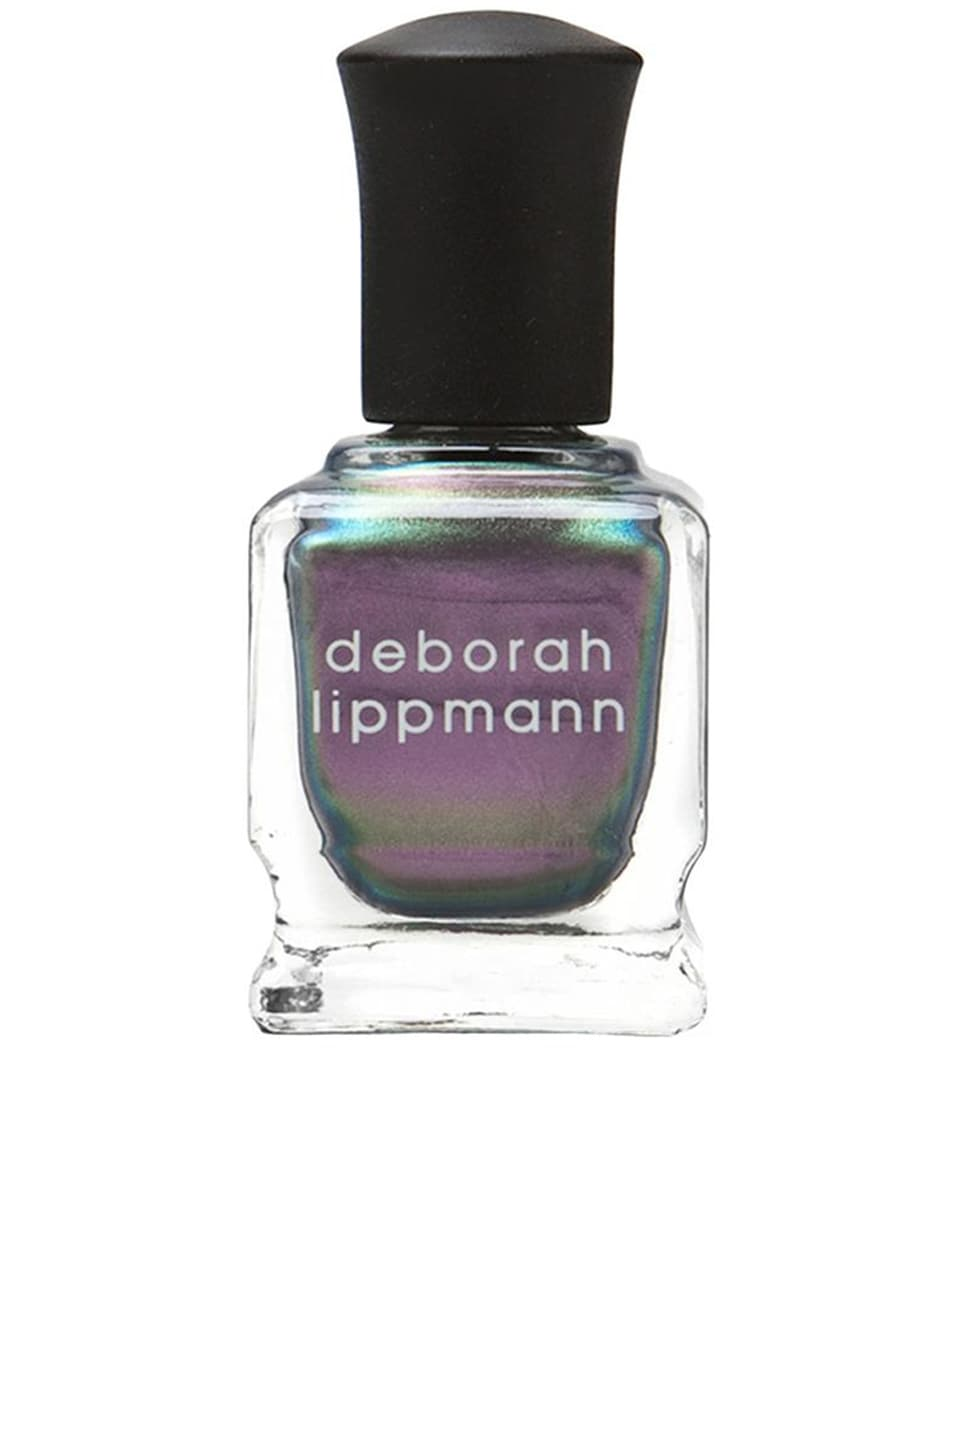 Deborah Lippmann Lacquer in Wicked Game